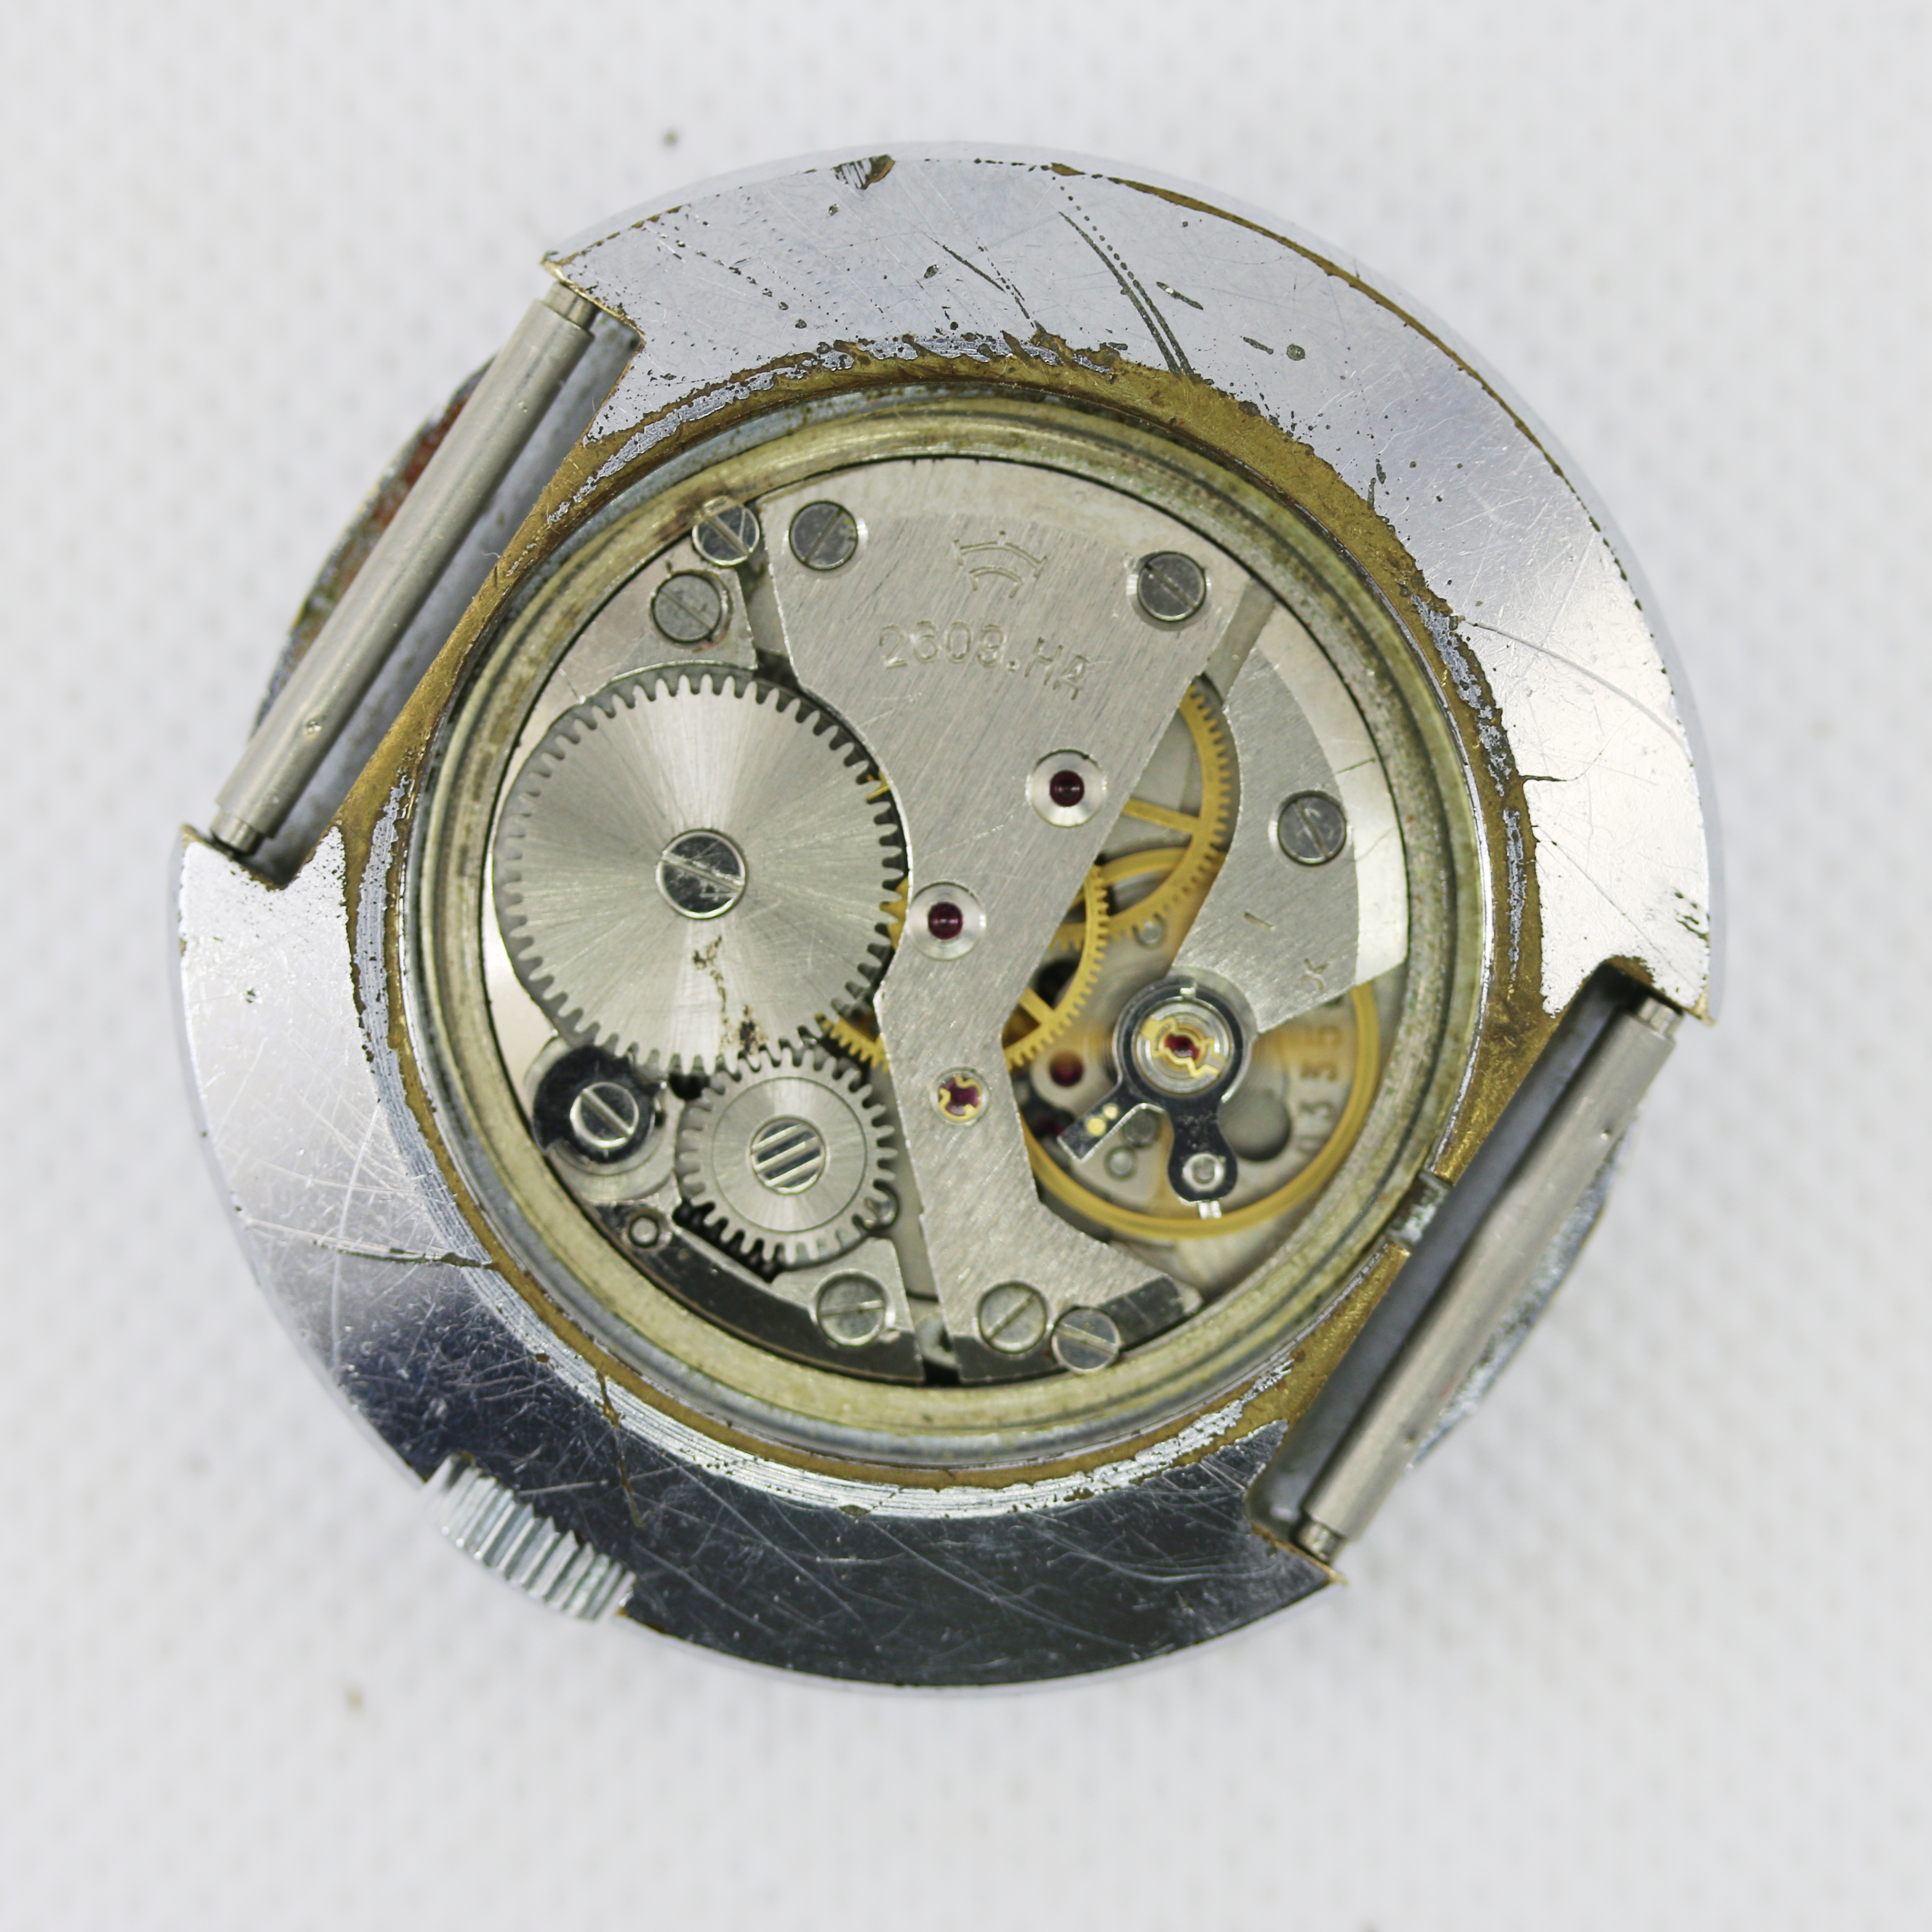 flake not after mitka author showed guy i before it could what selling realising one diamond movement img my blind this great a the has resist for another watch blinds when up buying lovely watches